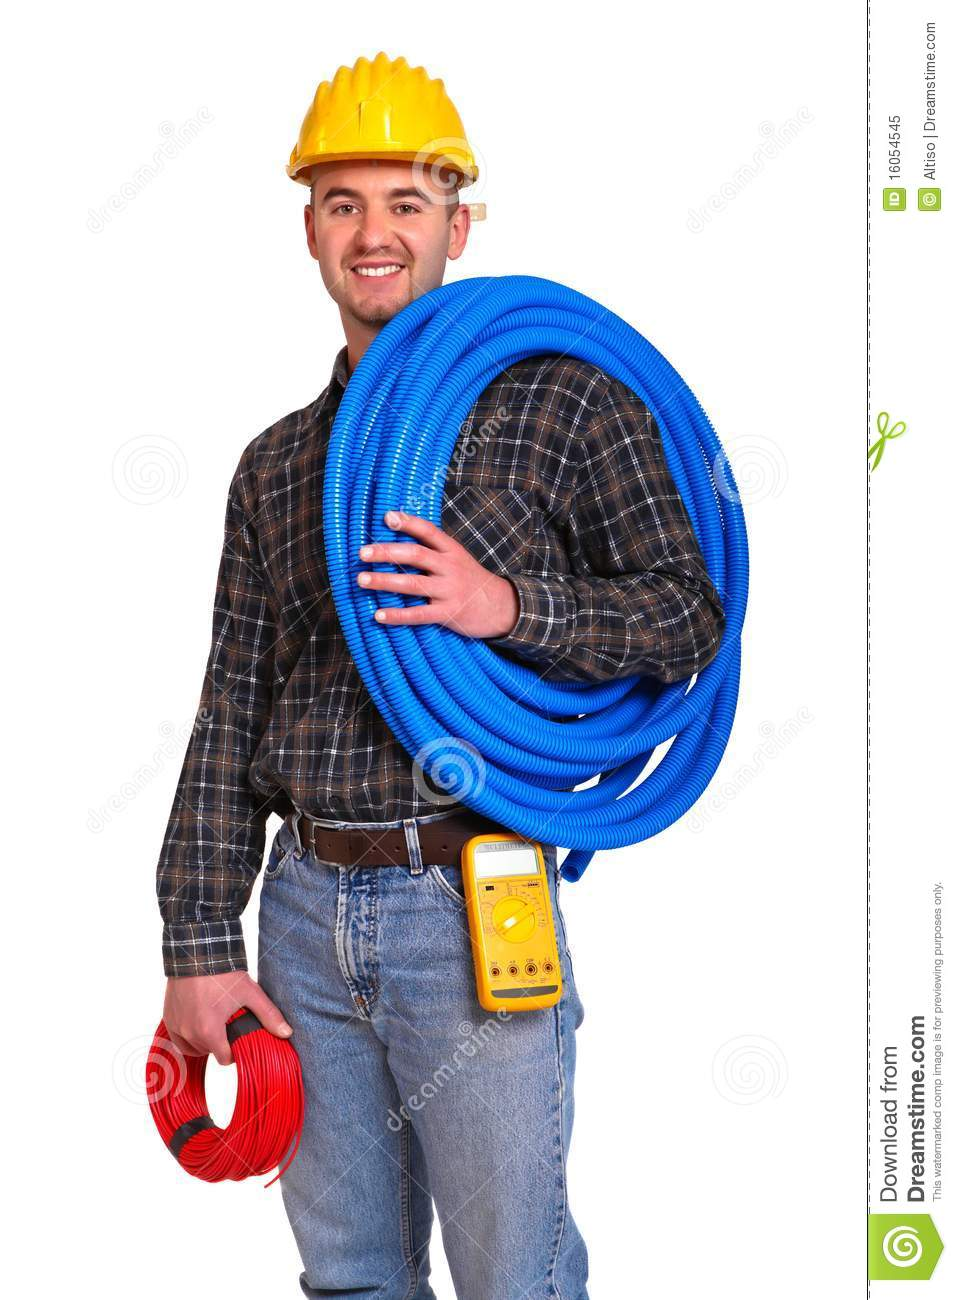 Electrician Worker. Royalty Free Stock Photo - Image: 16054545